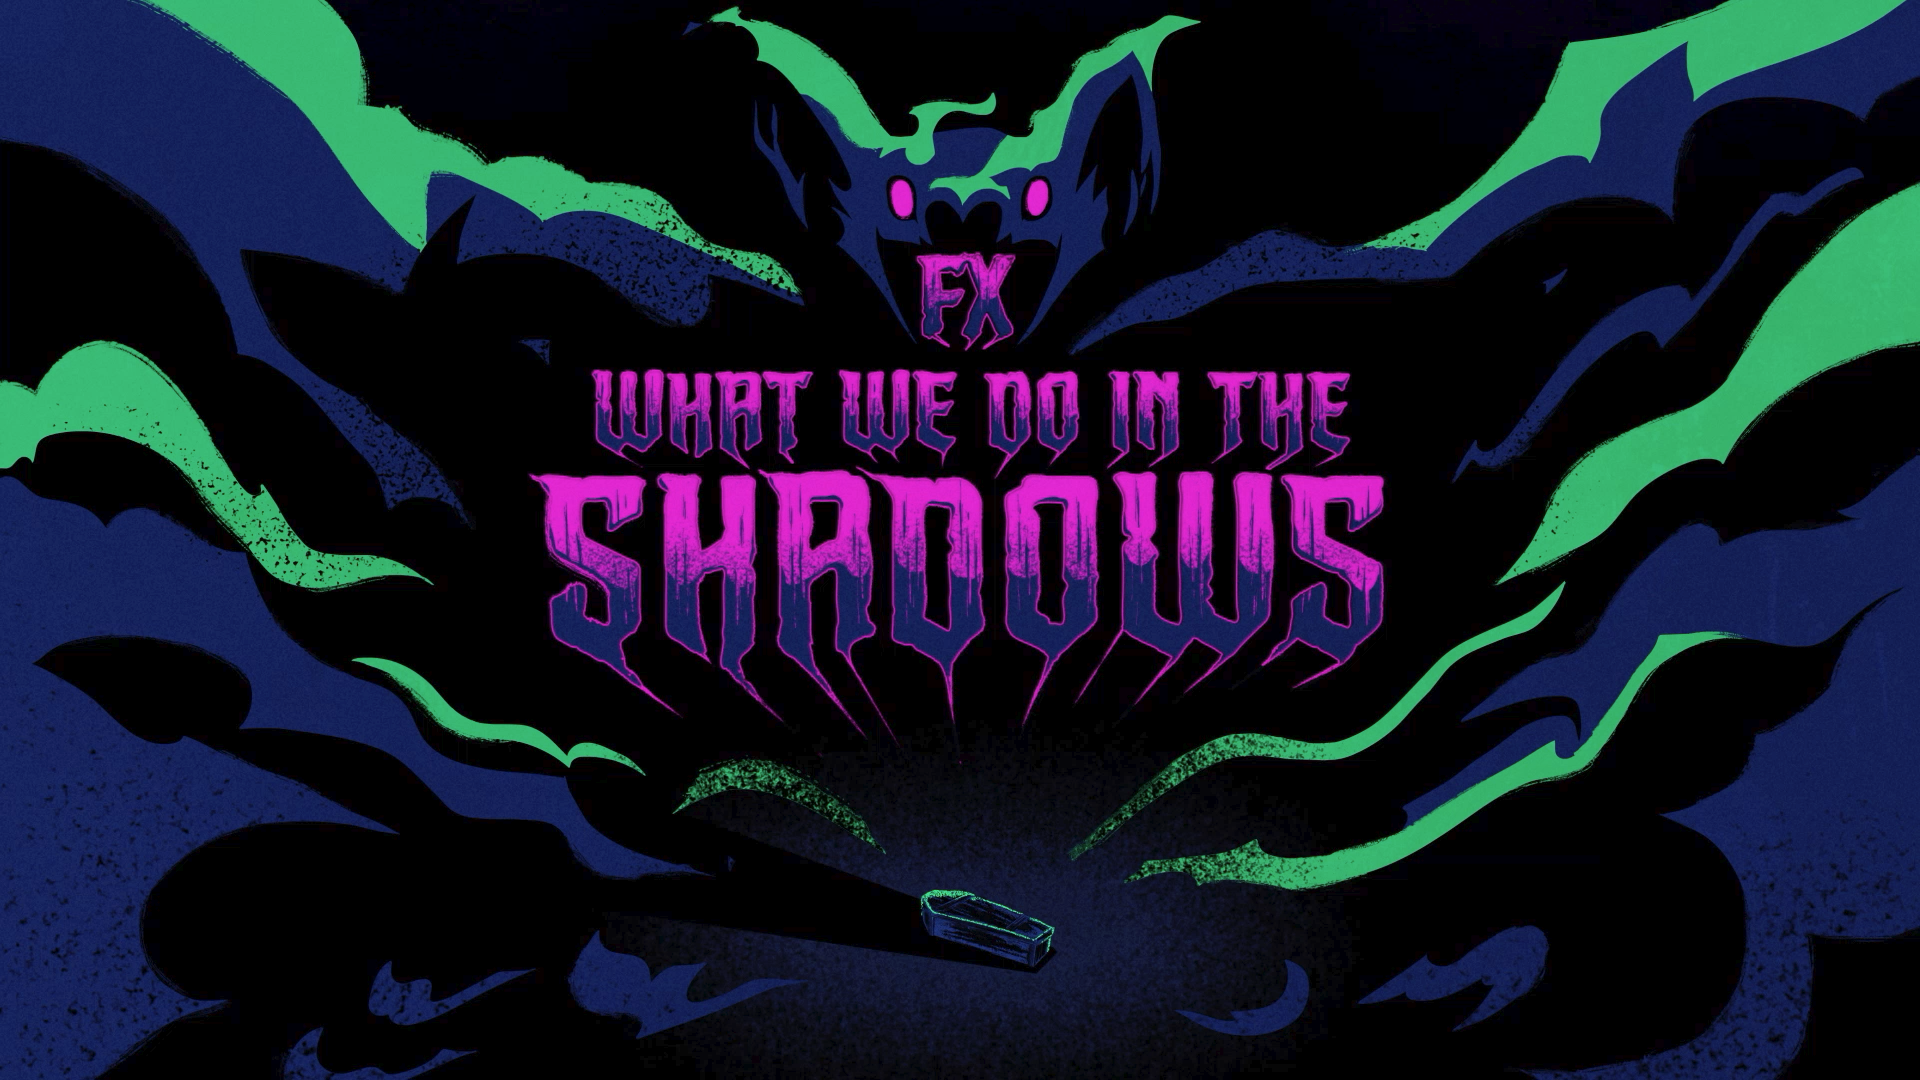 Awesome Inc Conjures a Spooky Episodic Package for Season 3 of FX's 'What We Do in the Shadows'